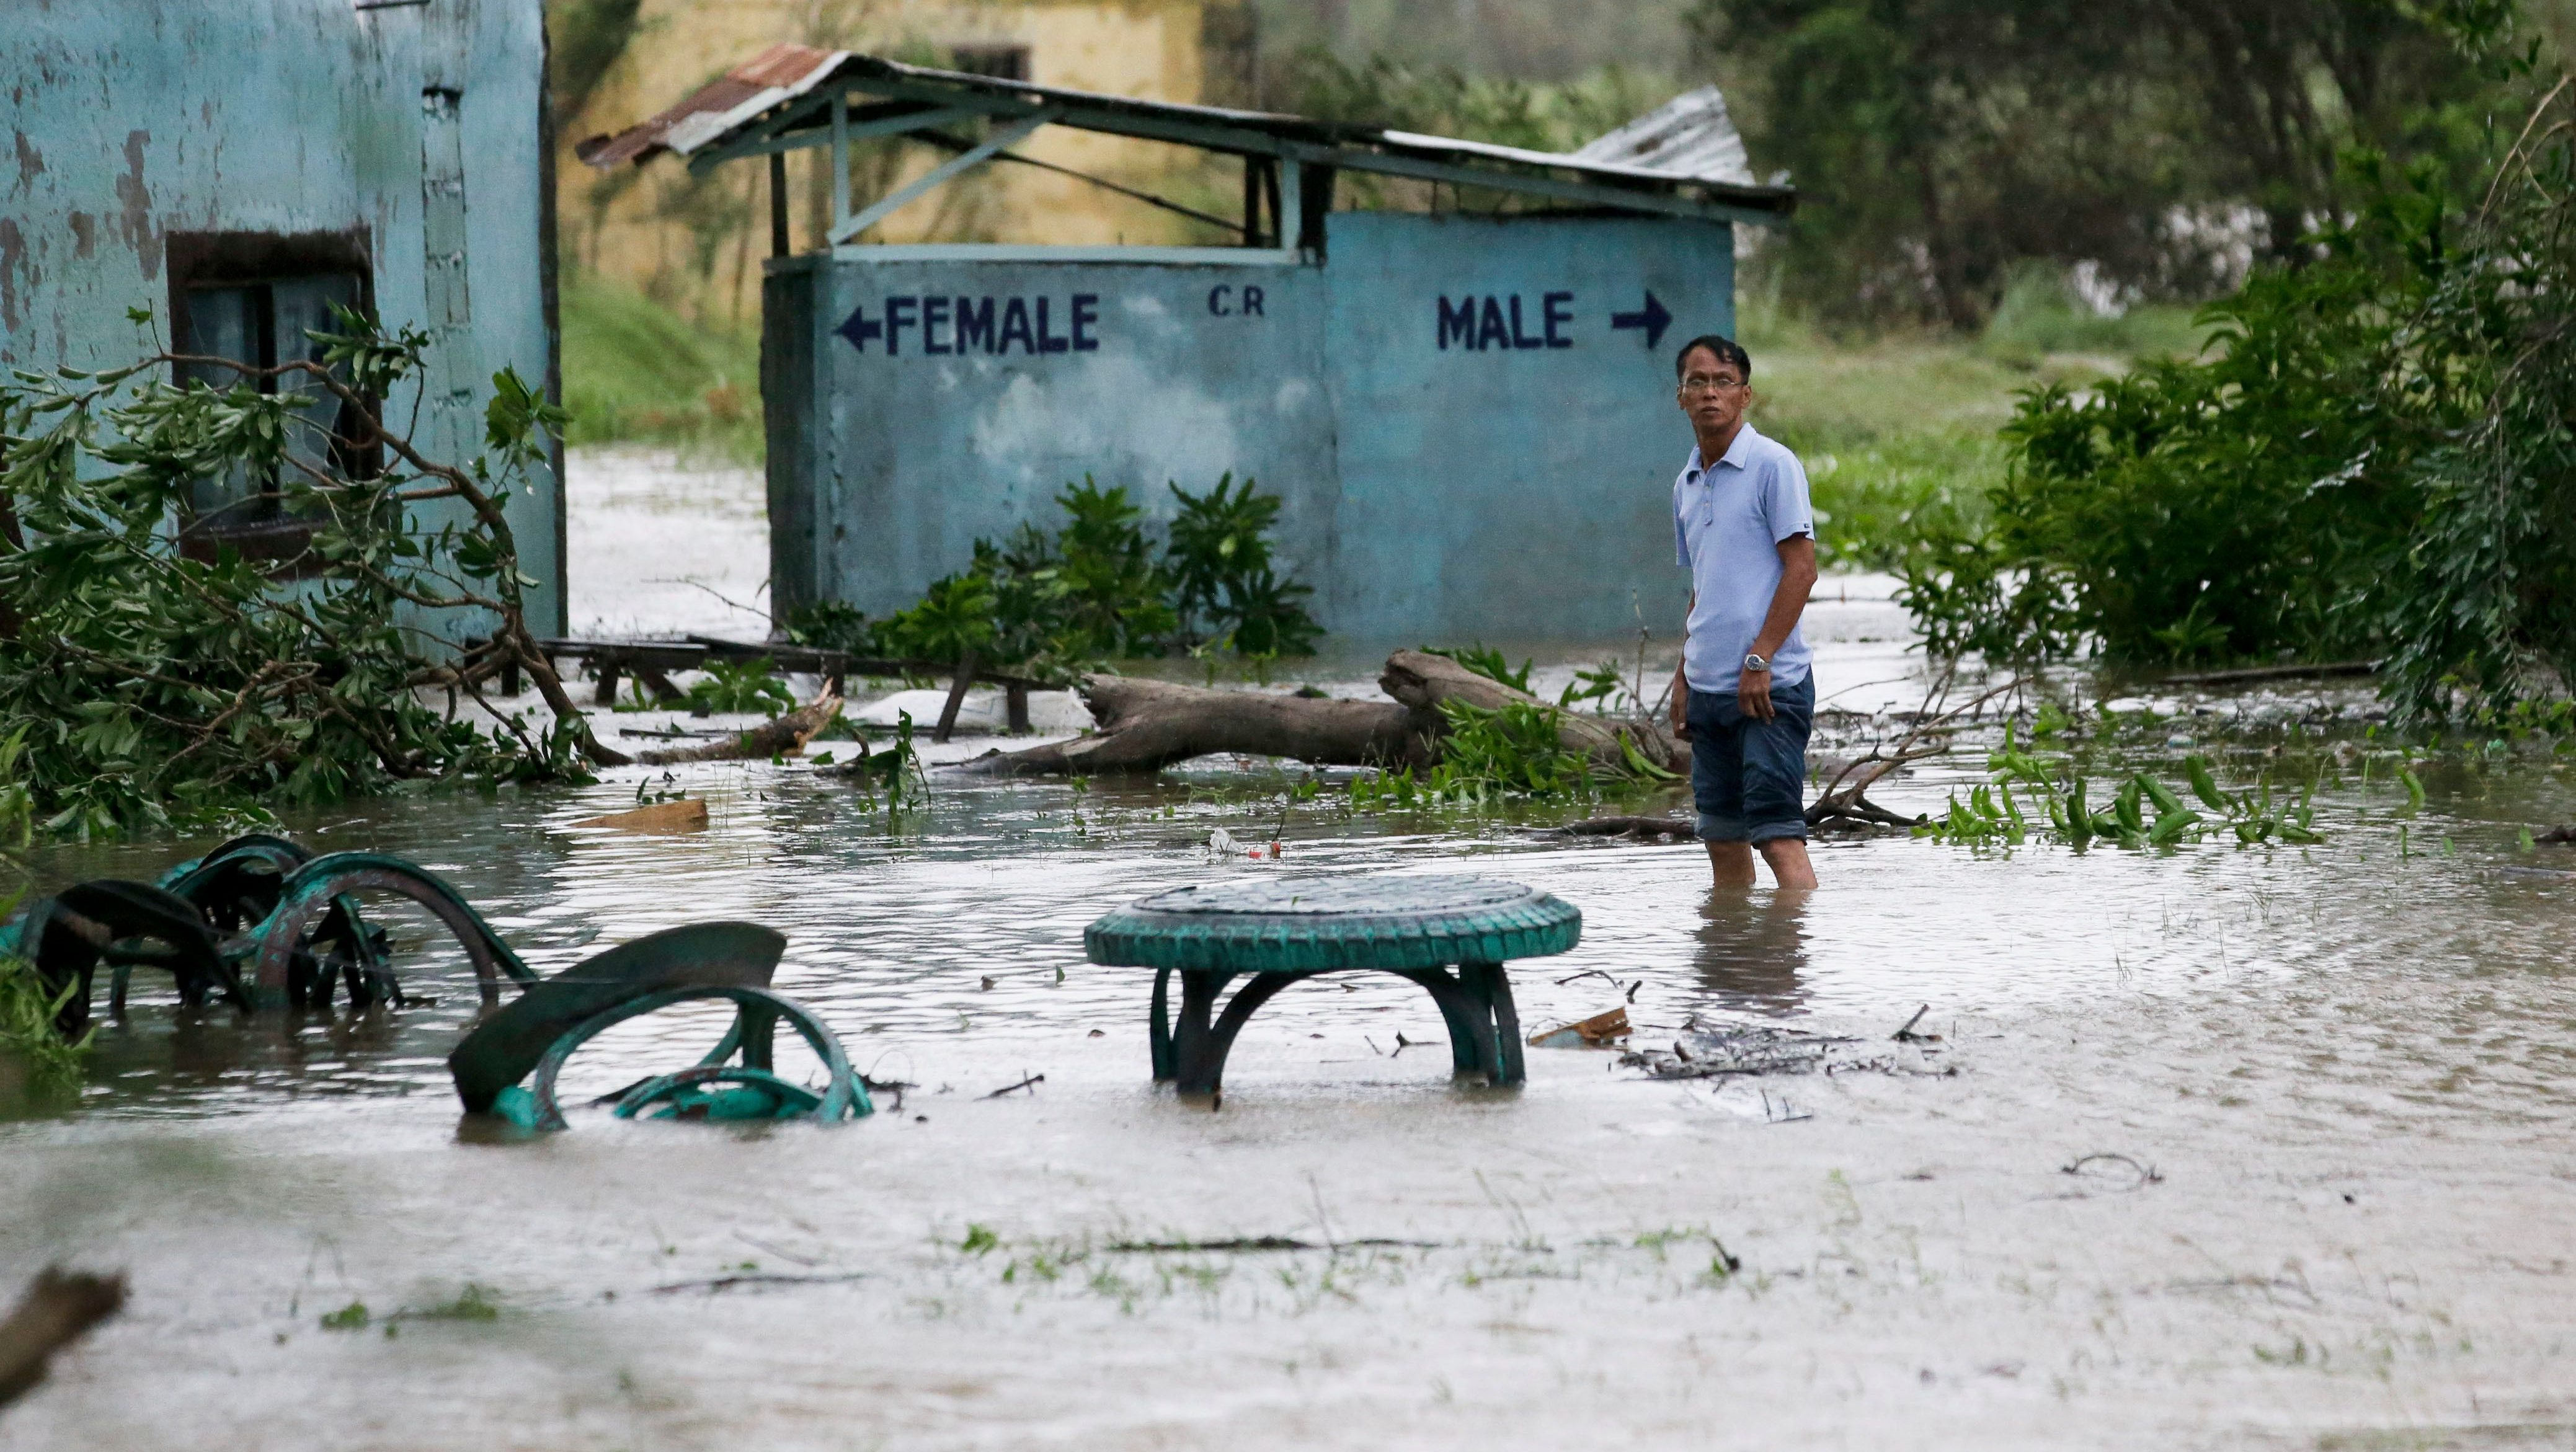 A resident wades along a flooded area as Typhoon Mangkhut barreled across Tuguegarao city in Cagayan province, northeastern Philippines on Saturday, Sept. 15, 2018. The typhoon slammed into the Philippines northeastern coast early Saturday, it's ferocious winds and blinding rain ripping off tin roof sheets and knocking out power, and plowed through the agricultural region at the start of the onslaught.